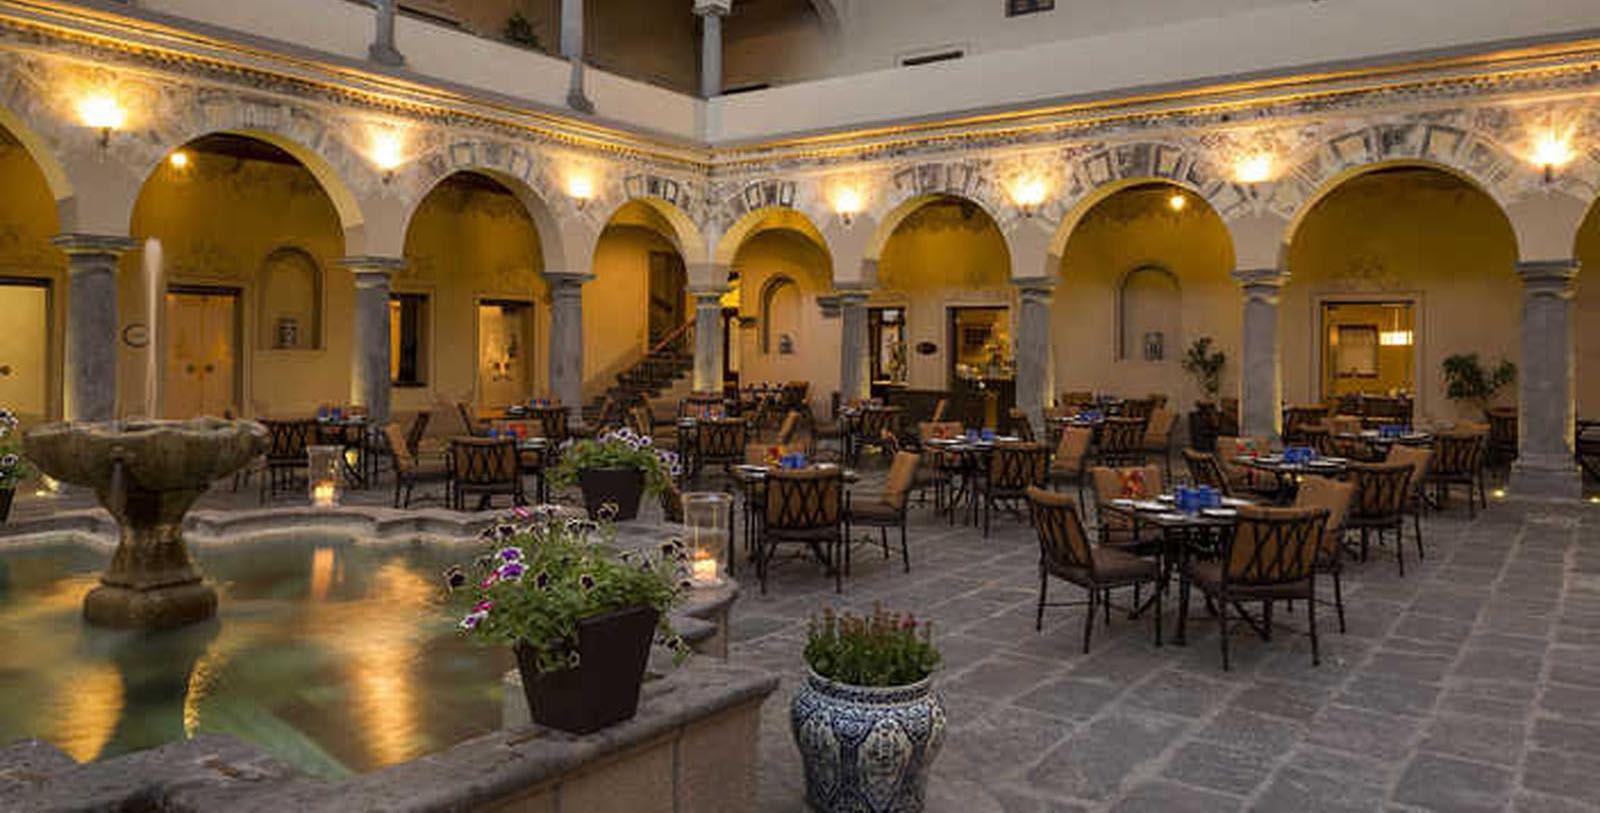 Image of Dining Area Hotel Exterior Quinta Real Puebla, 1593, Member of Historic Hotels Worldwide, in Puebla de Zaragoza, Mexico, Taste